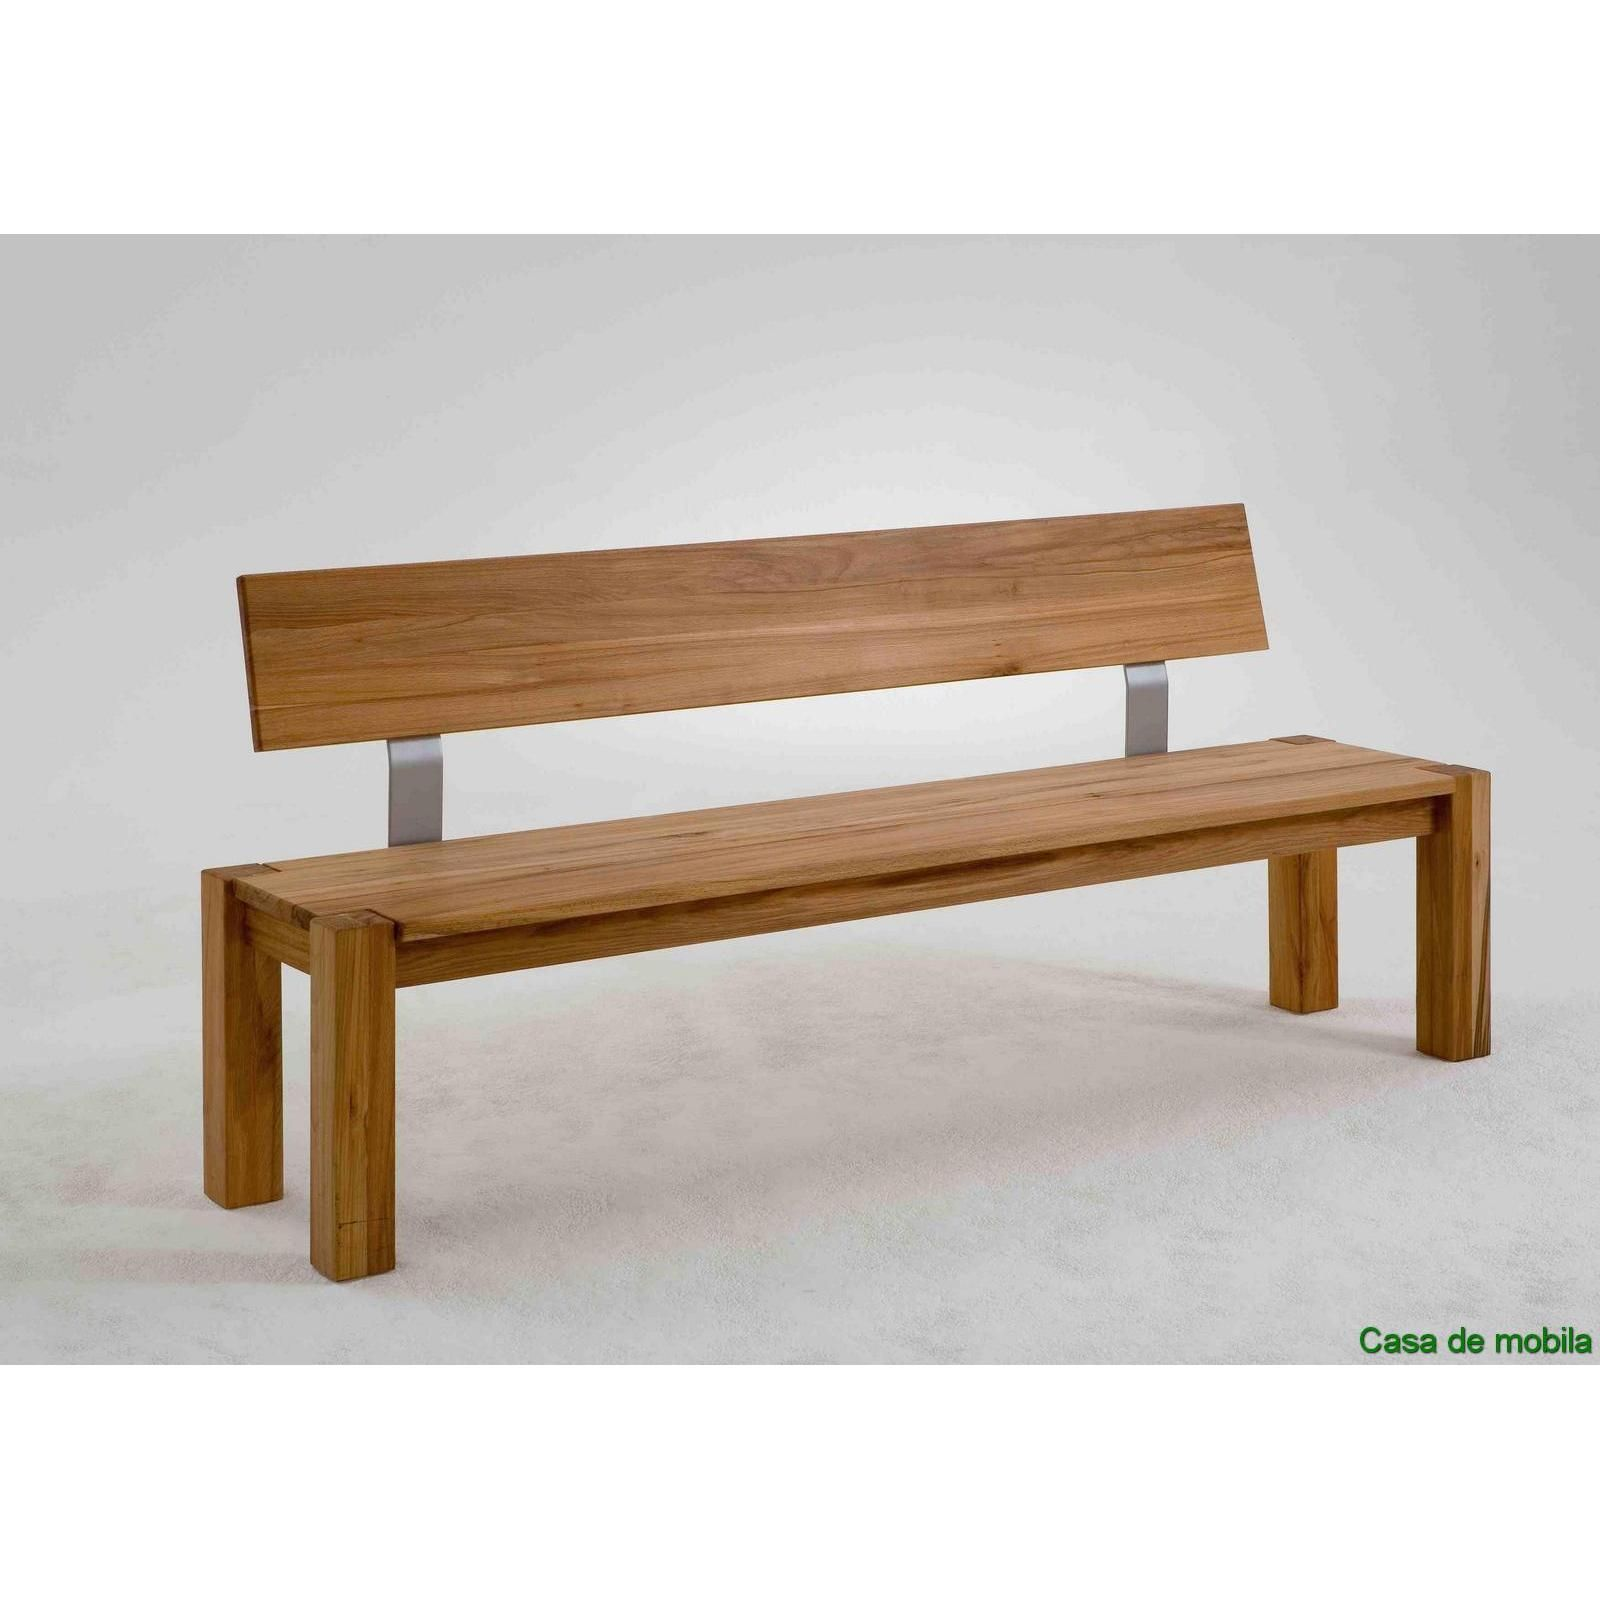 Tolle sitzbank massivholz mit lehne | Beautiful Benches in ...